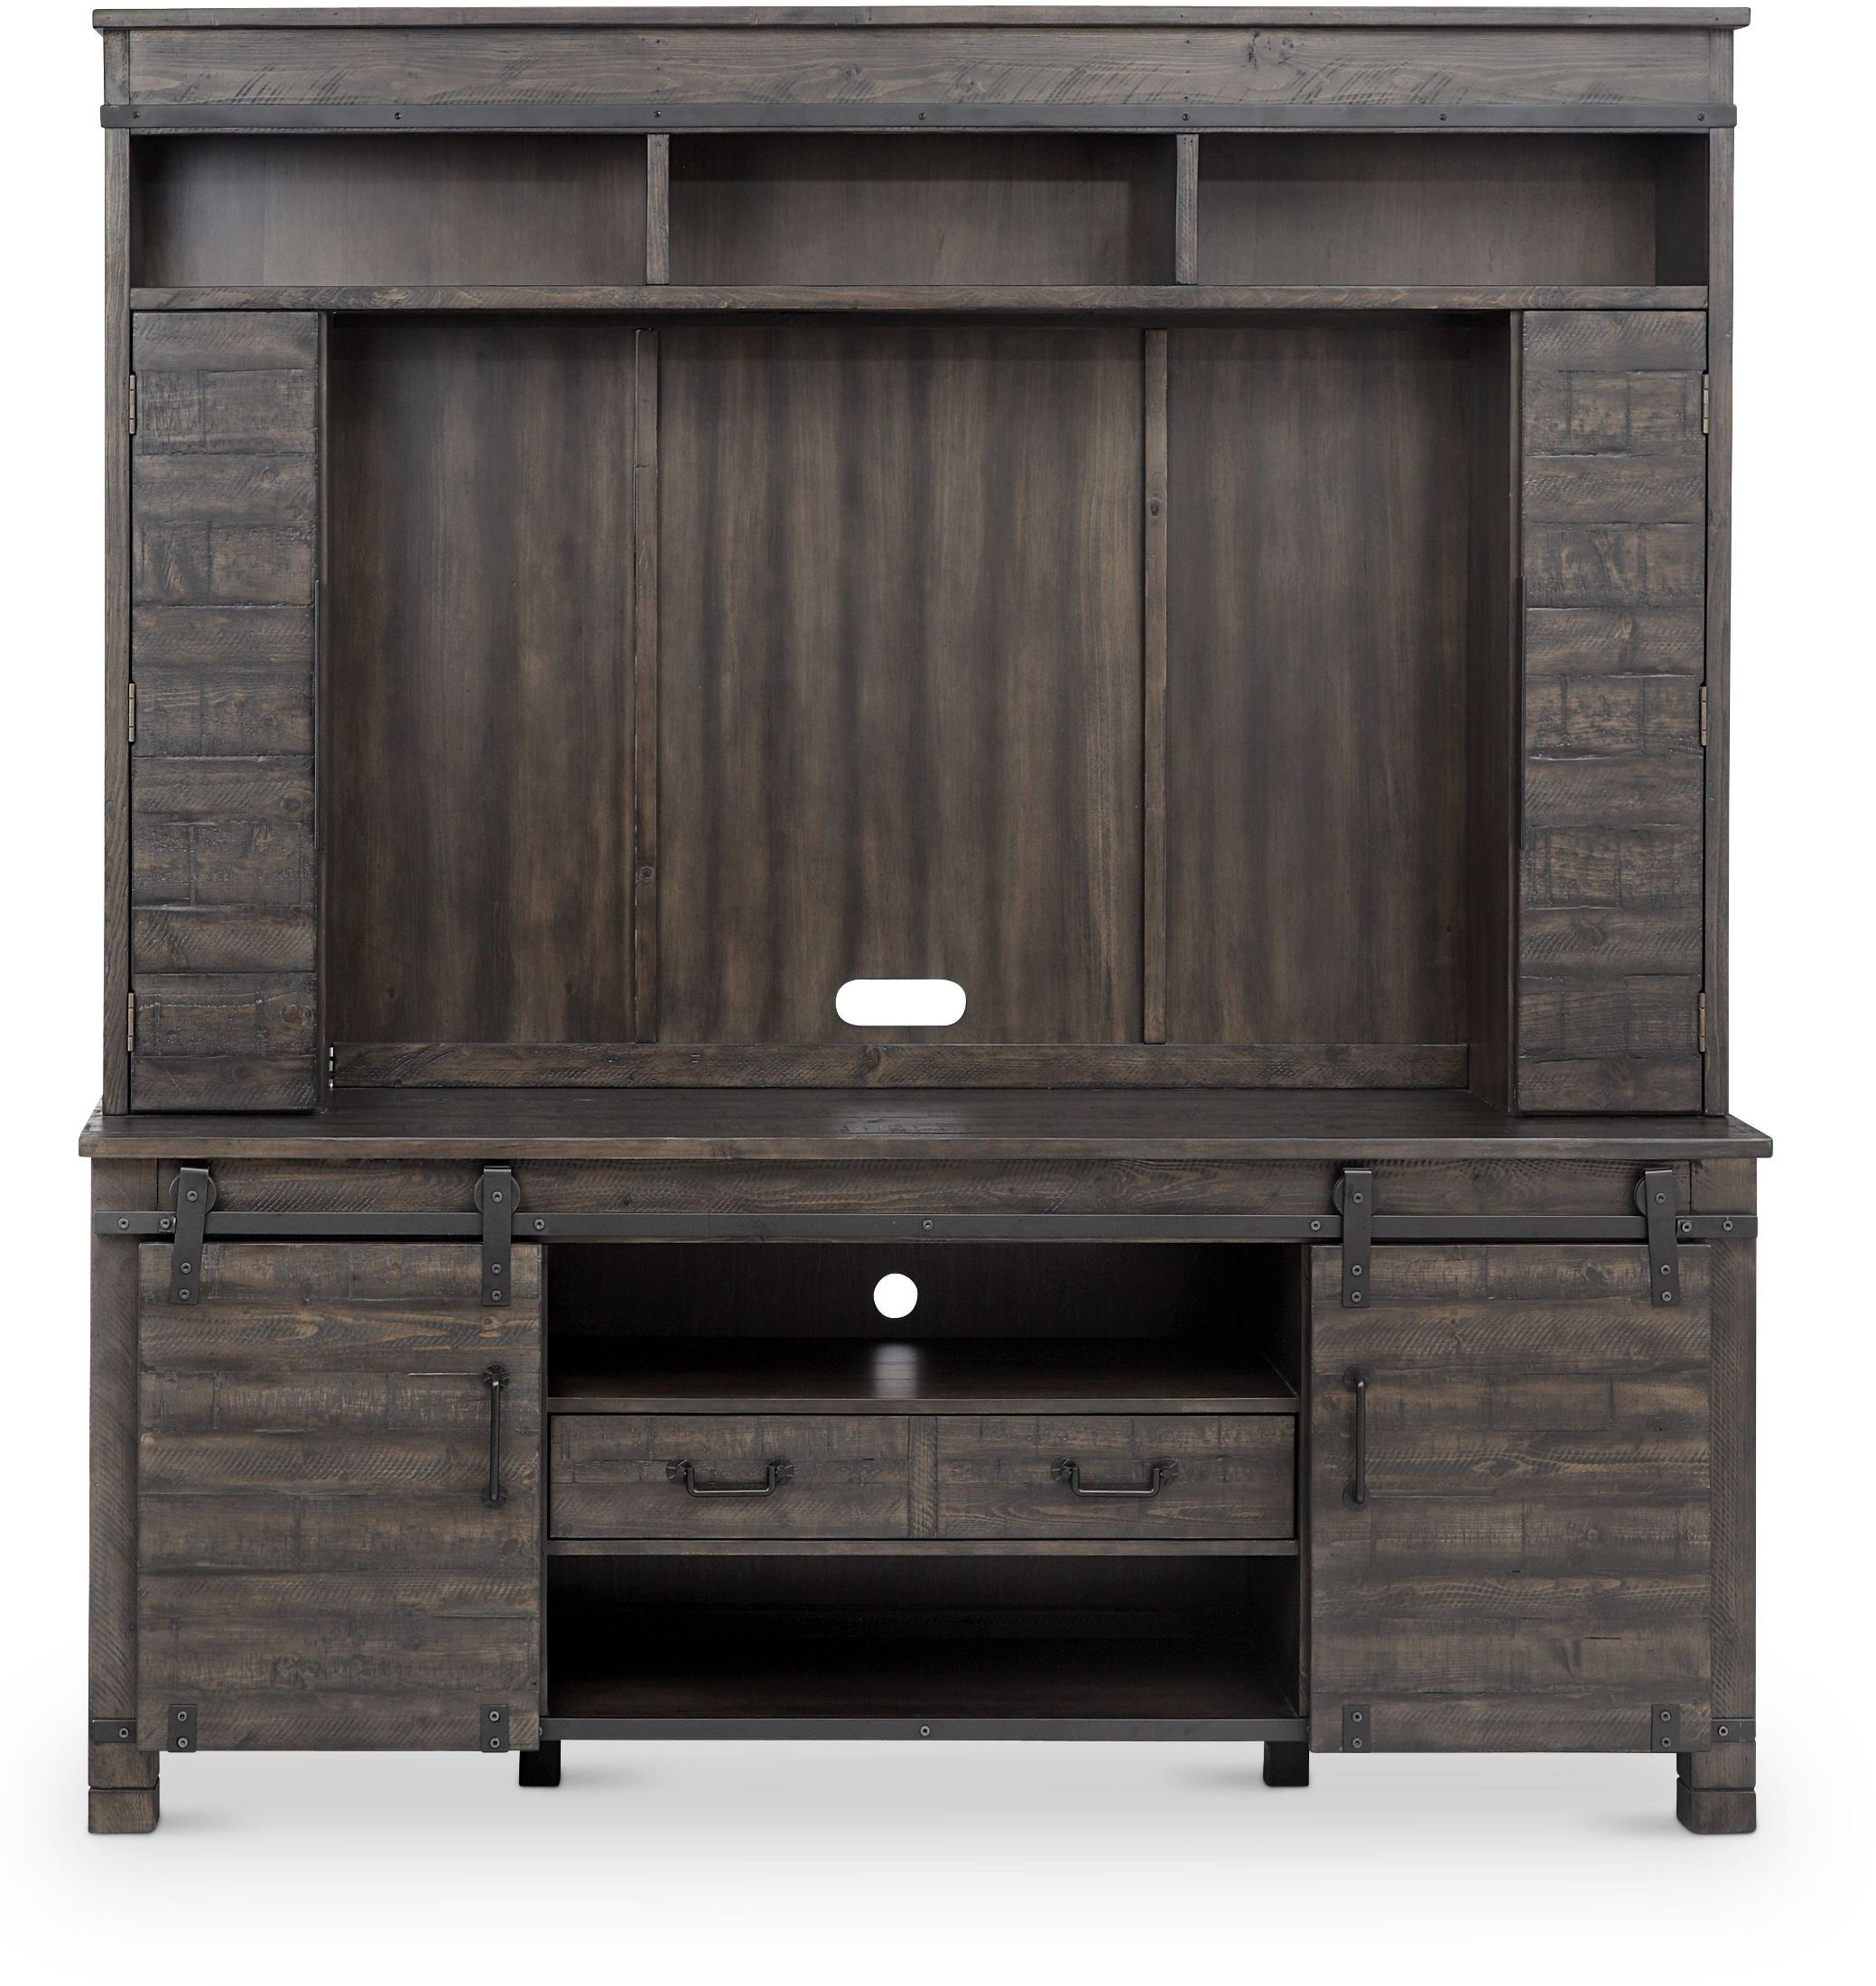 Magnussen Abington Weathered Charcoal Console